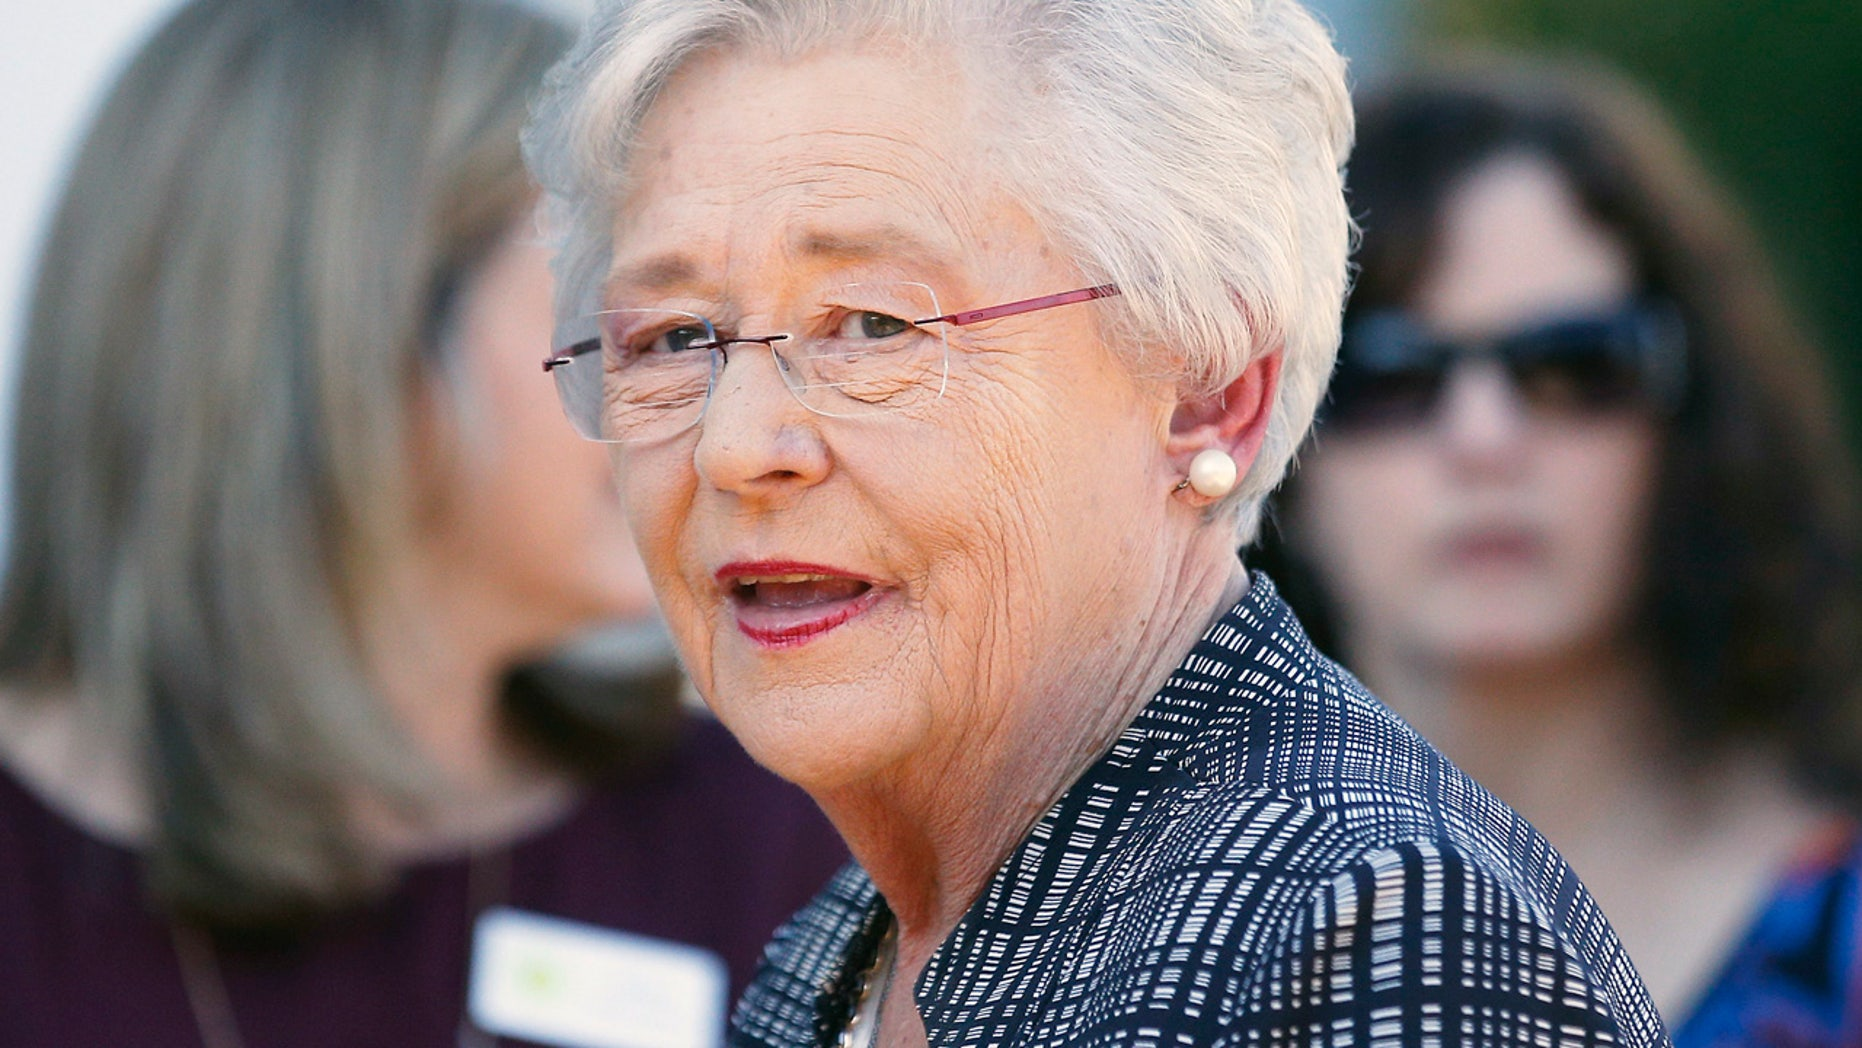 Alabama Gov. Kay Ivey took office in April 2017, after her predecessor resigned over a sex scandal.